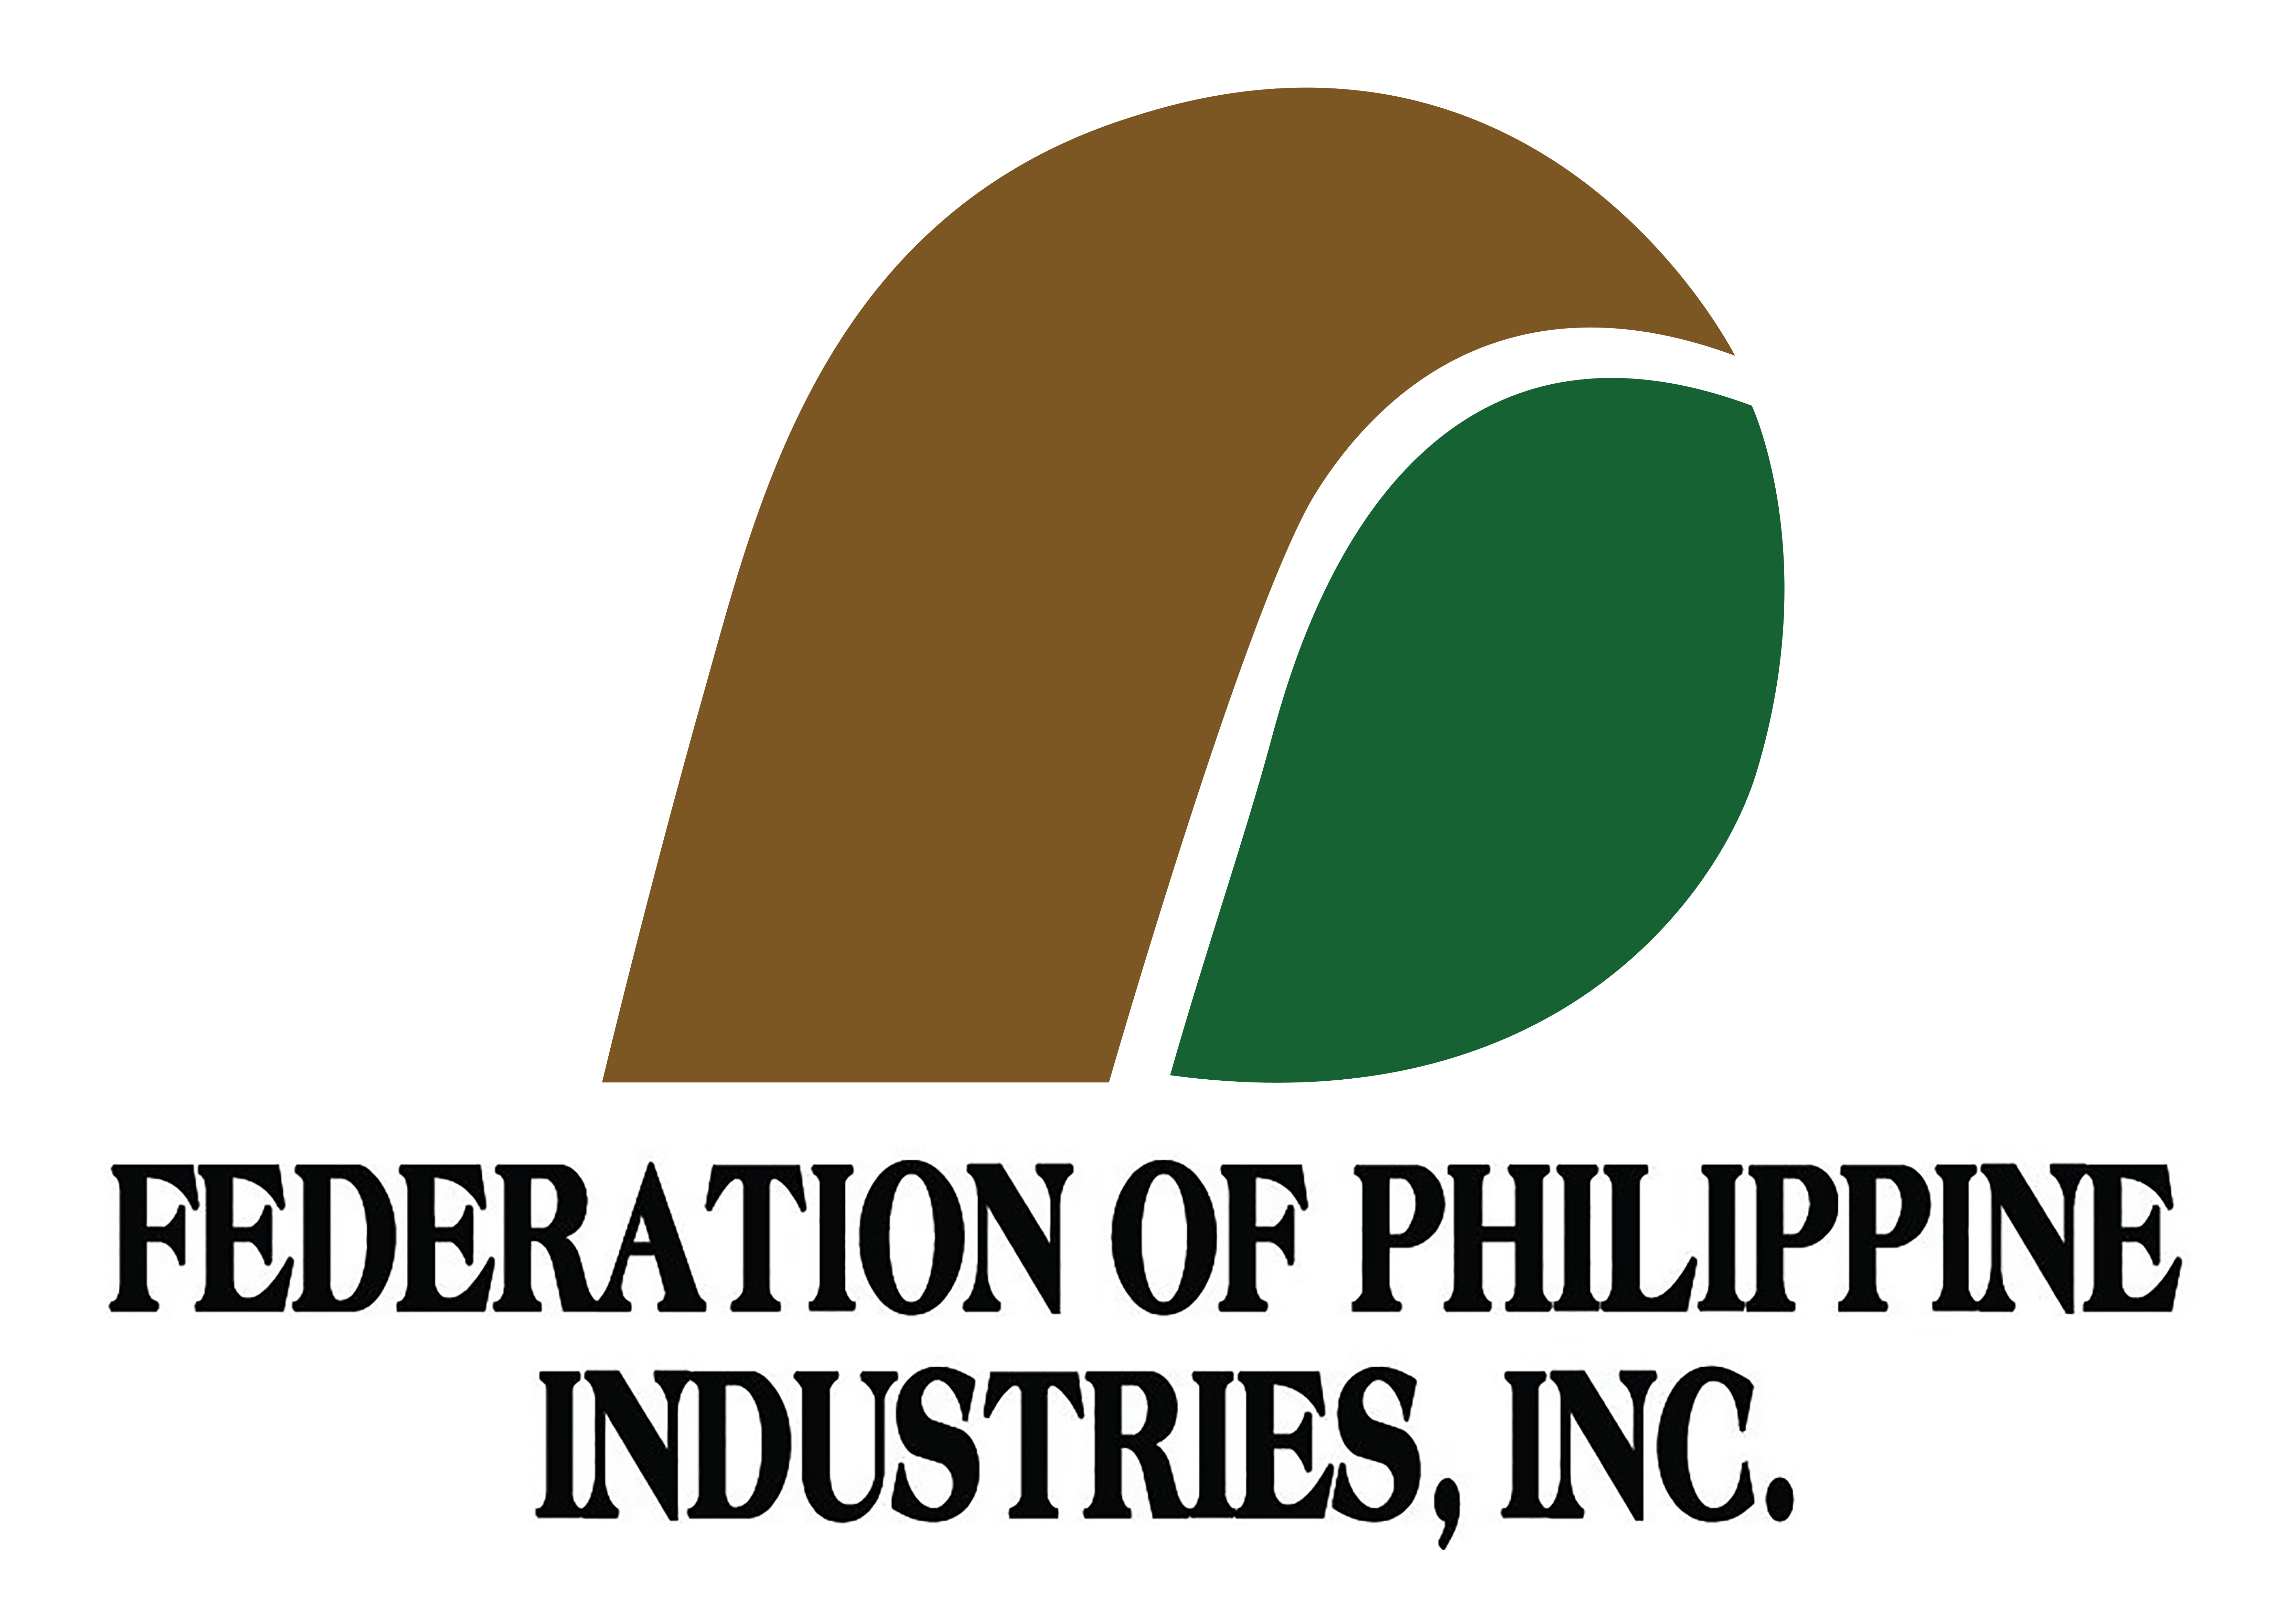 Federation of Philippine Industries